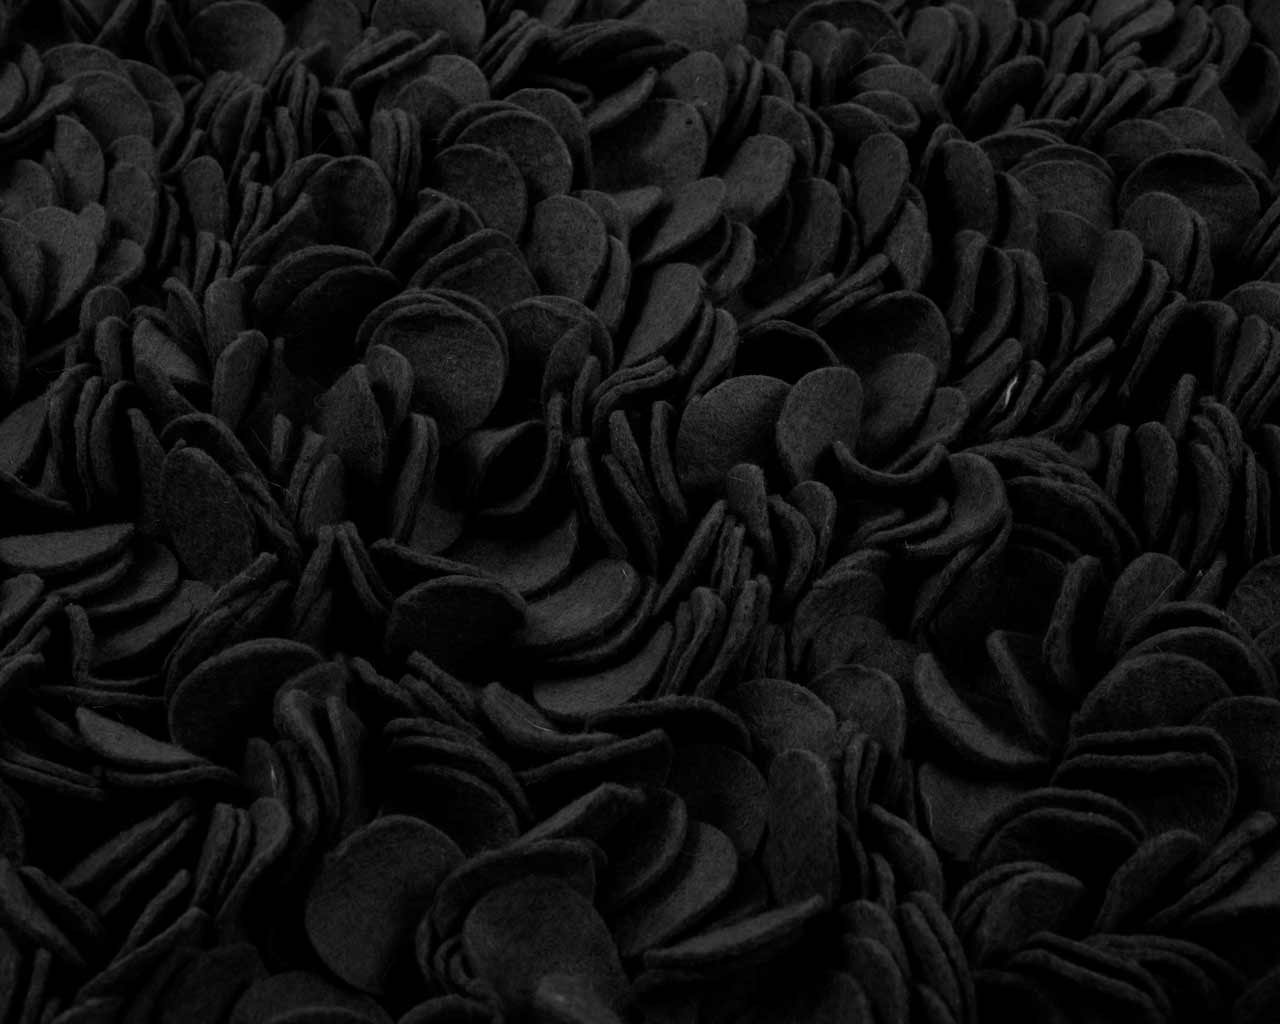 black felted wool rug close up design